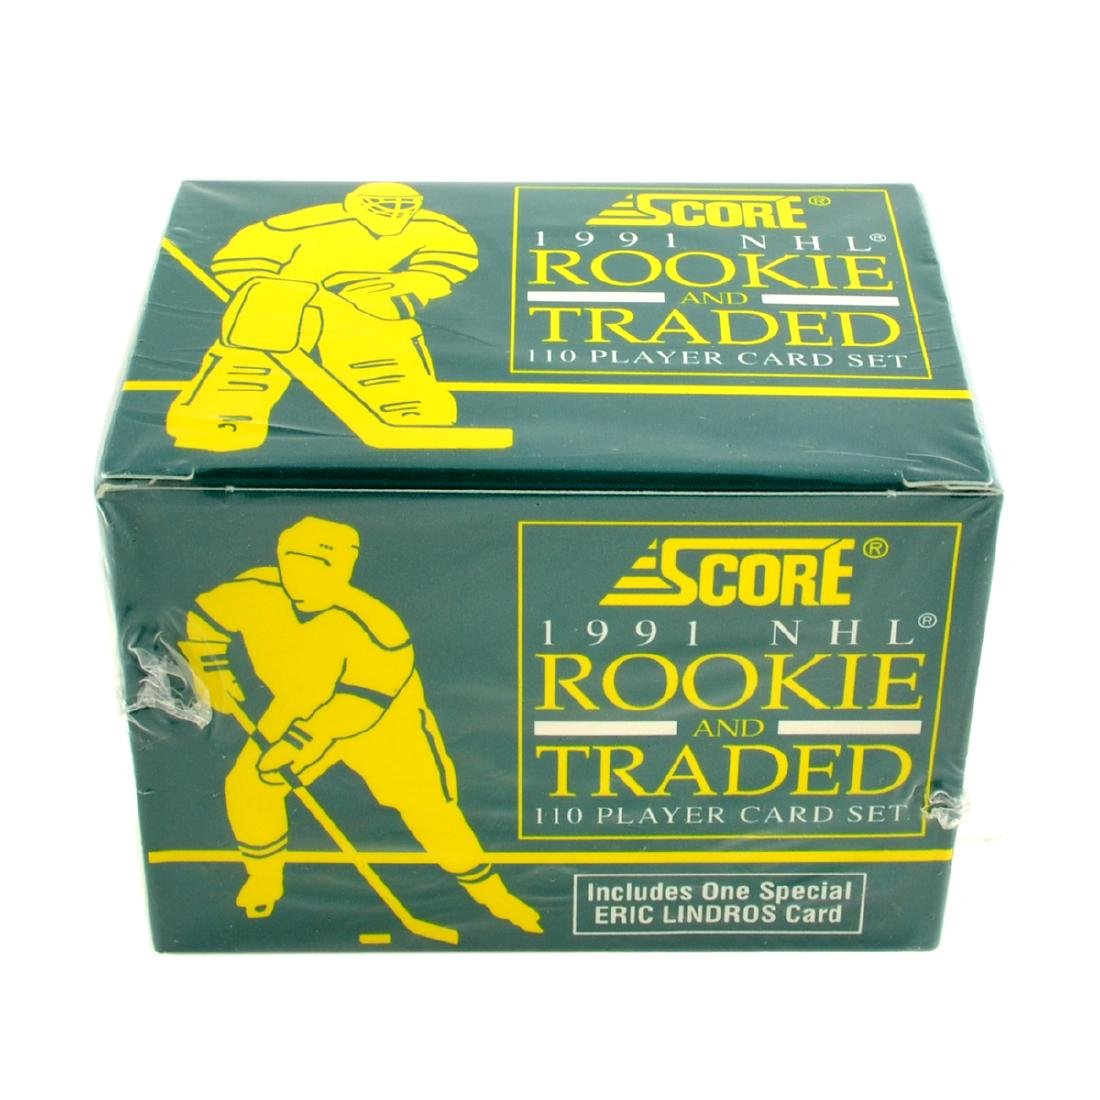 1991 Score Rookie & Traded NHL Card Set (Unopen)